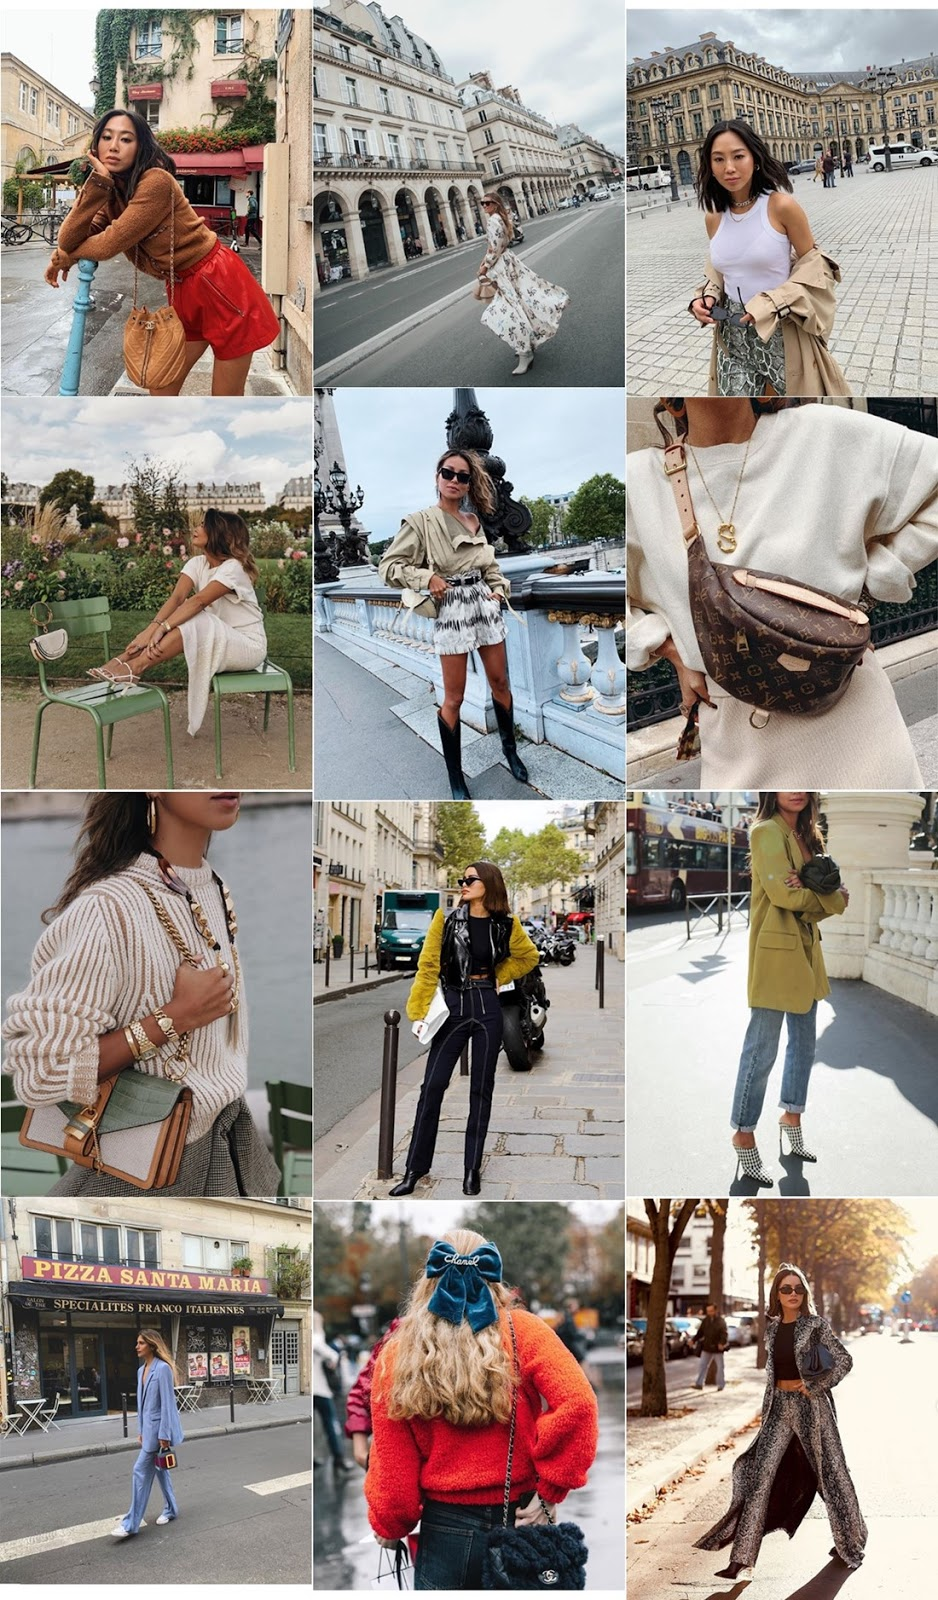 best paris fashion week street style outfits 2019